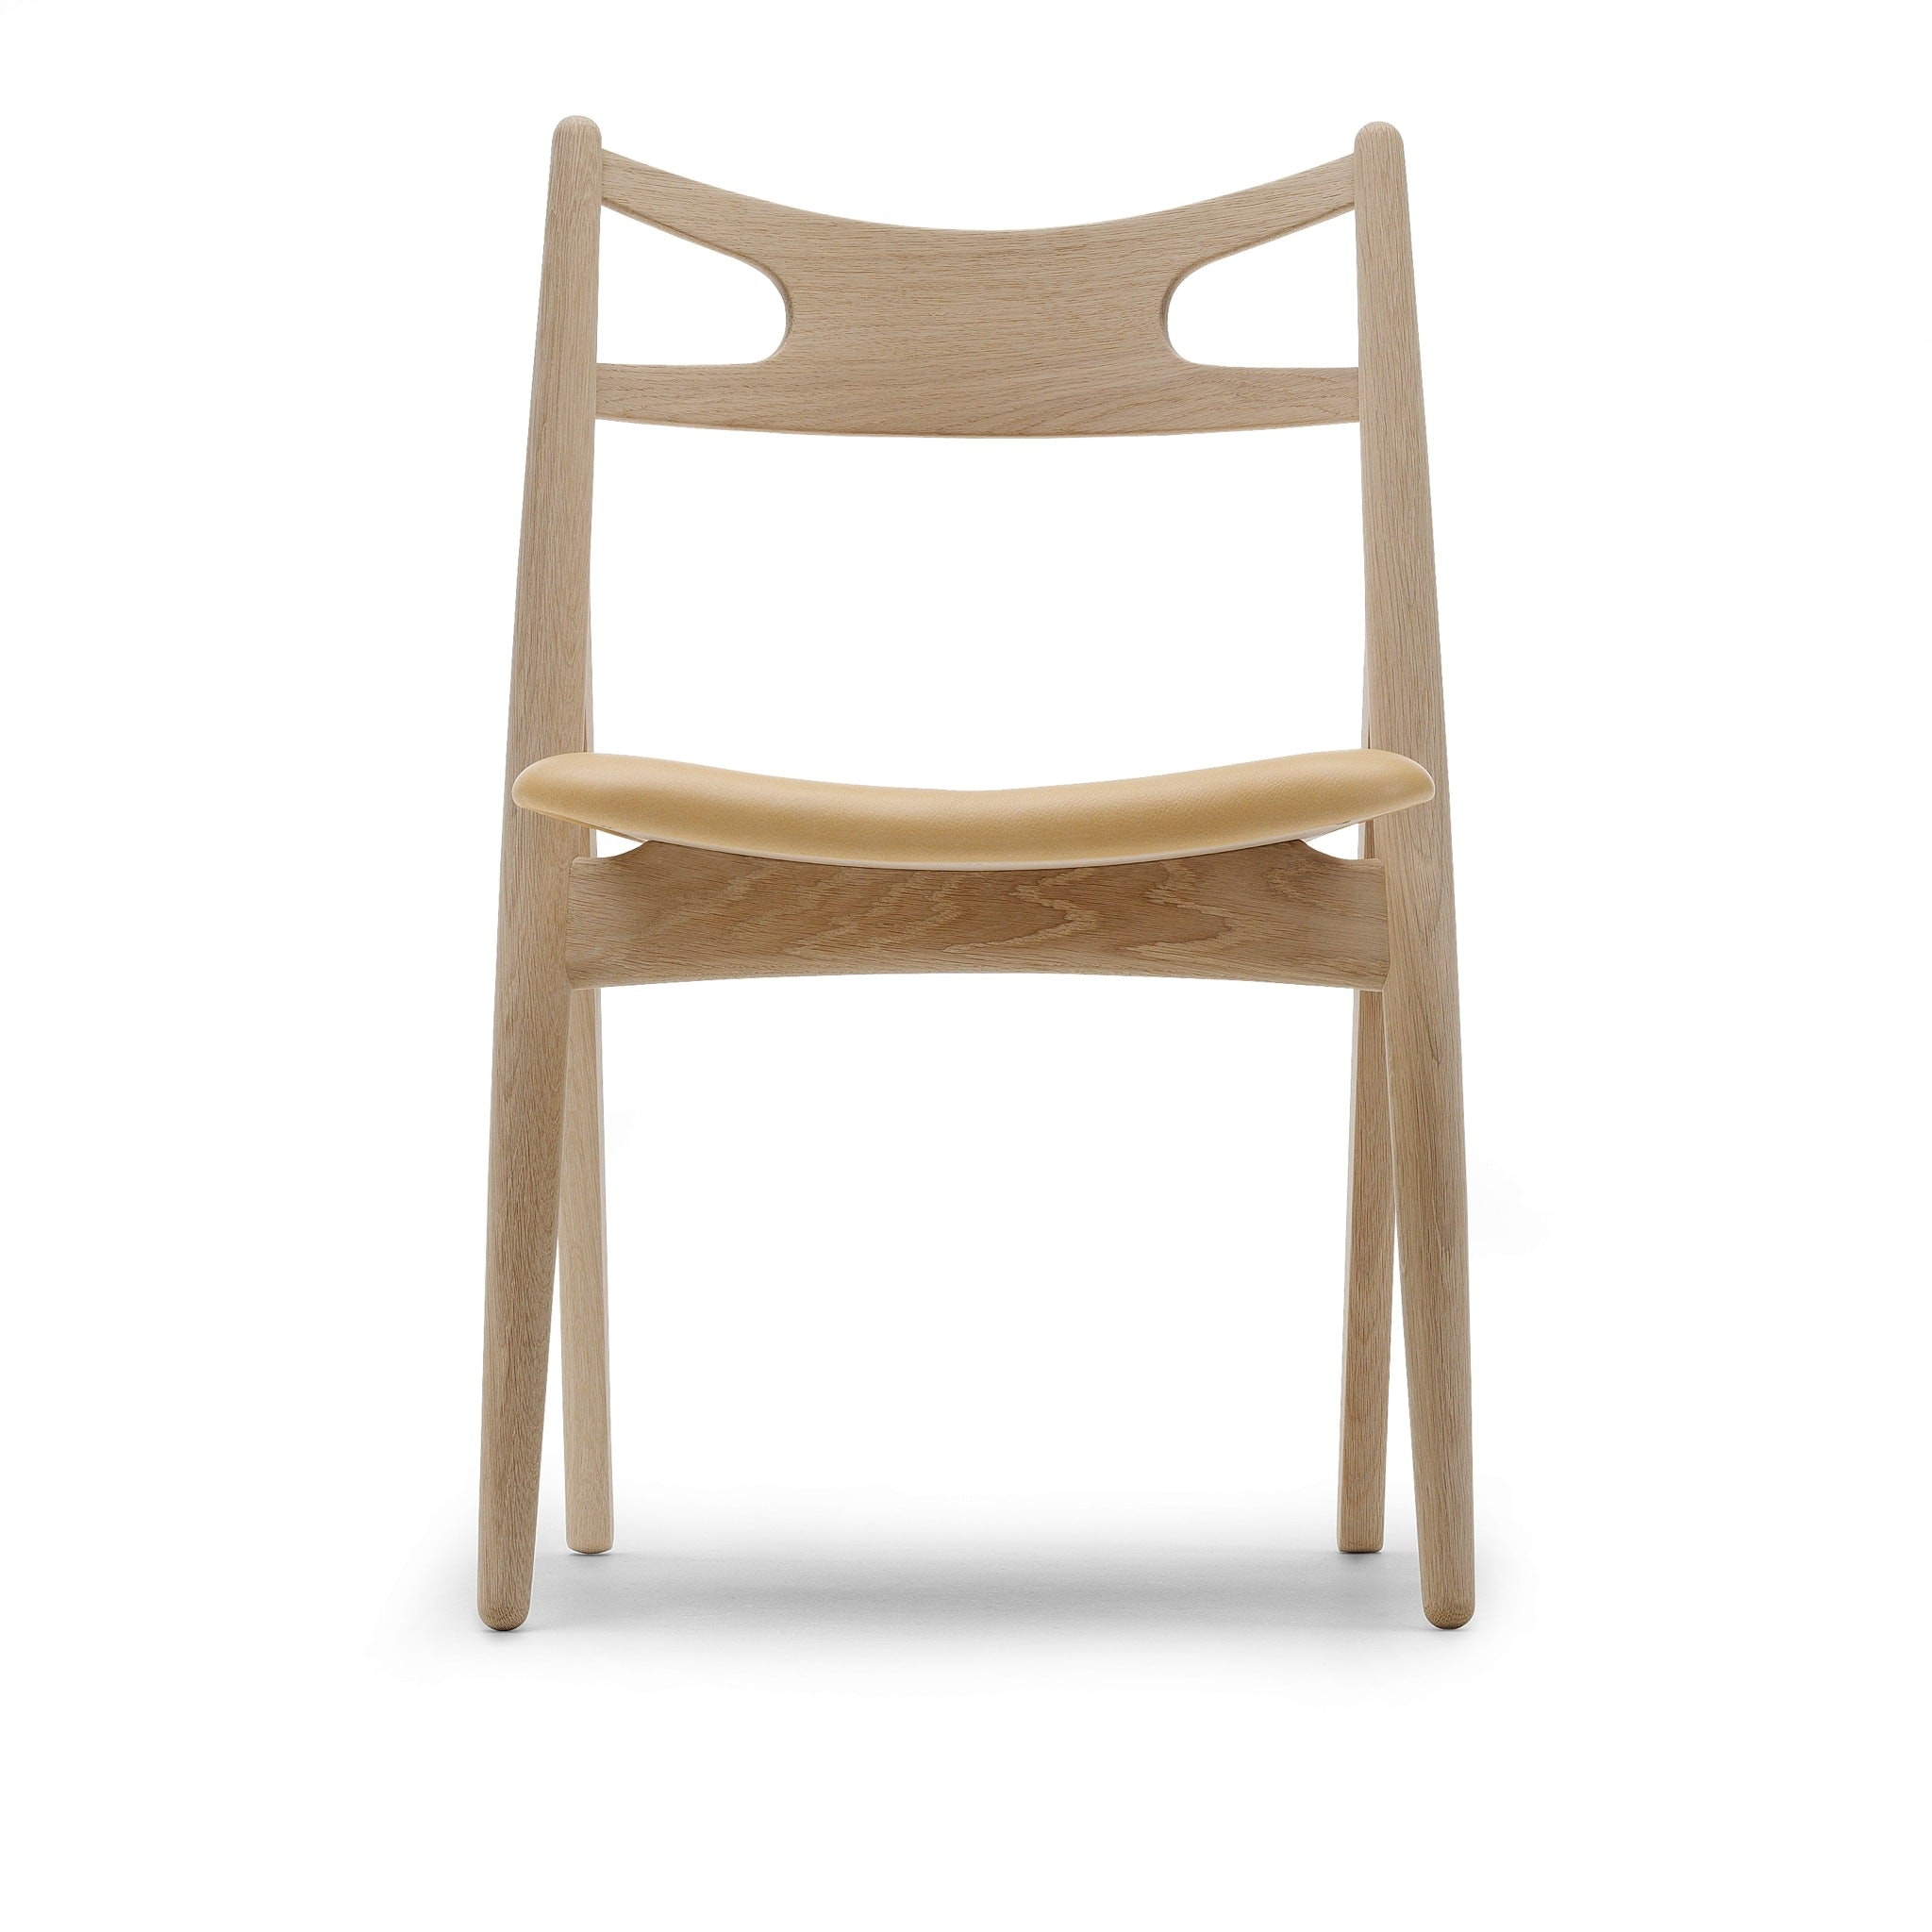 CH29P Sawbuck Chair Upholstered by Carl Hansen & Søn